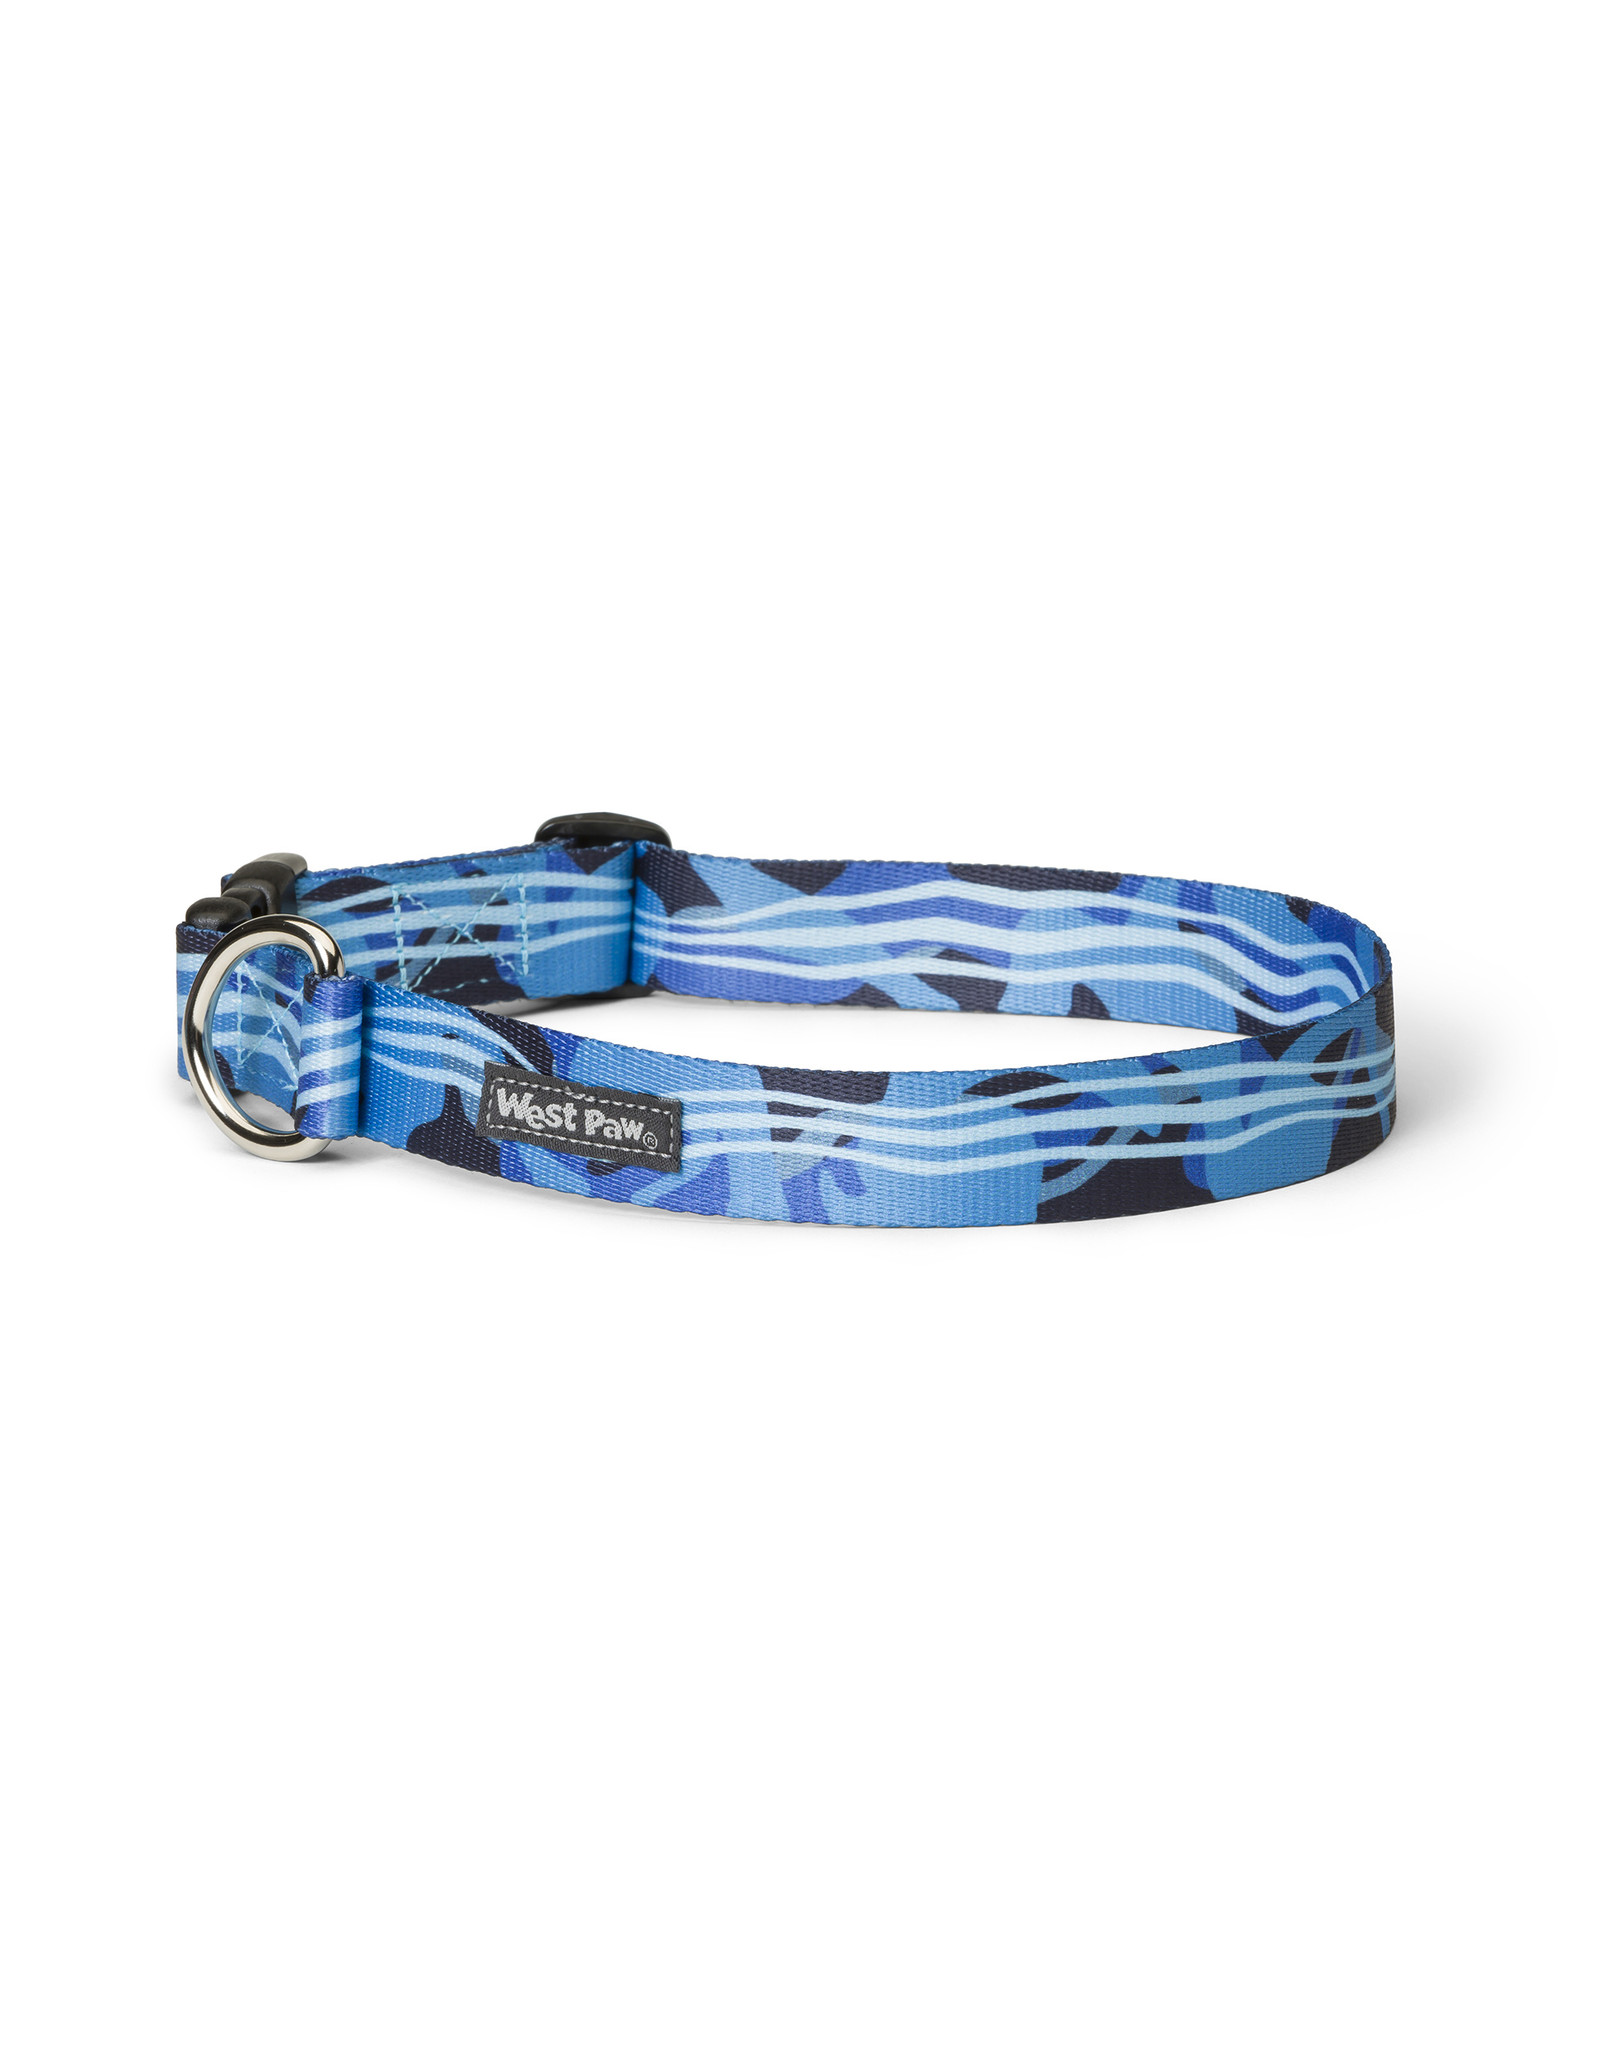 West Paw Designs Westpaw: Outings™ Collar Large Blue Groove